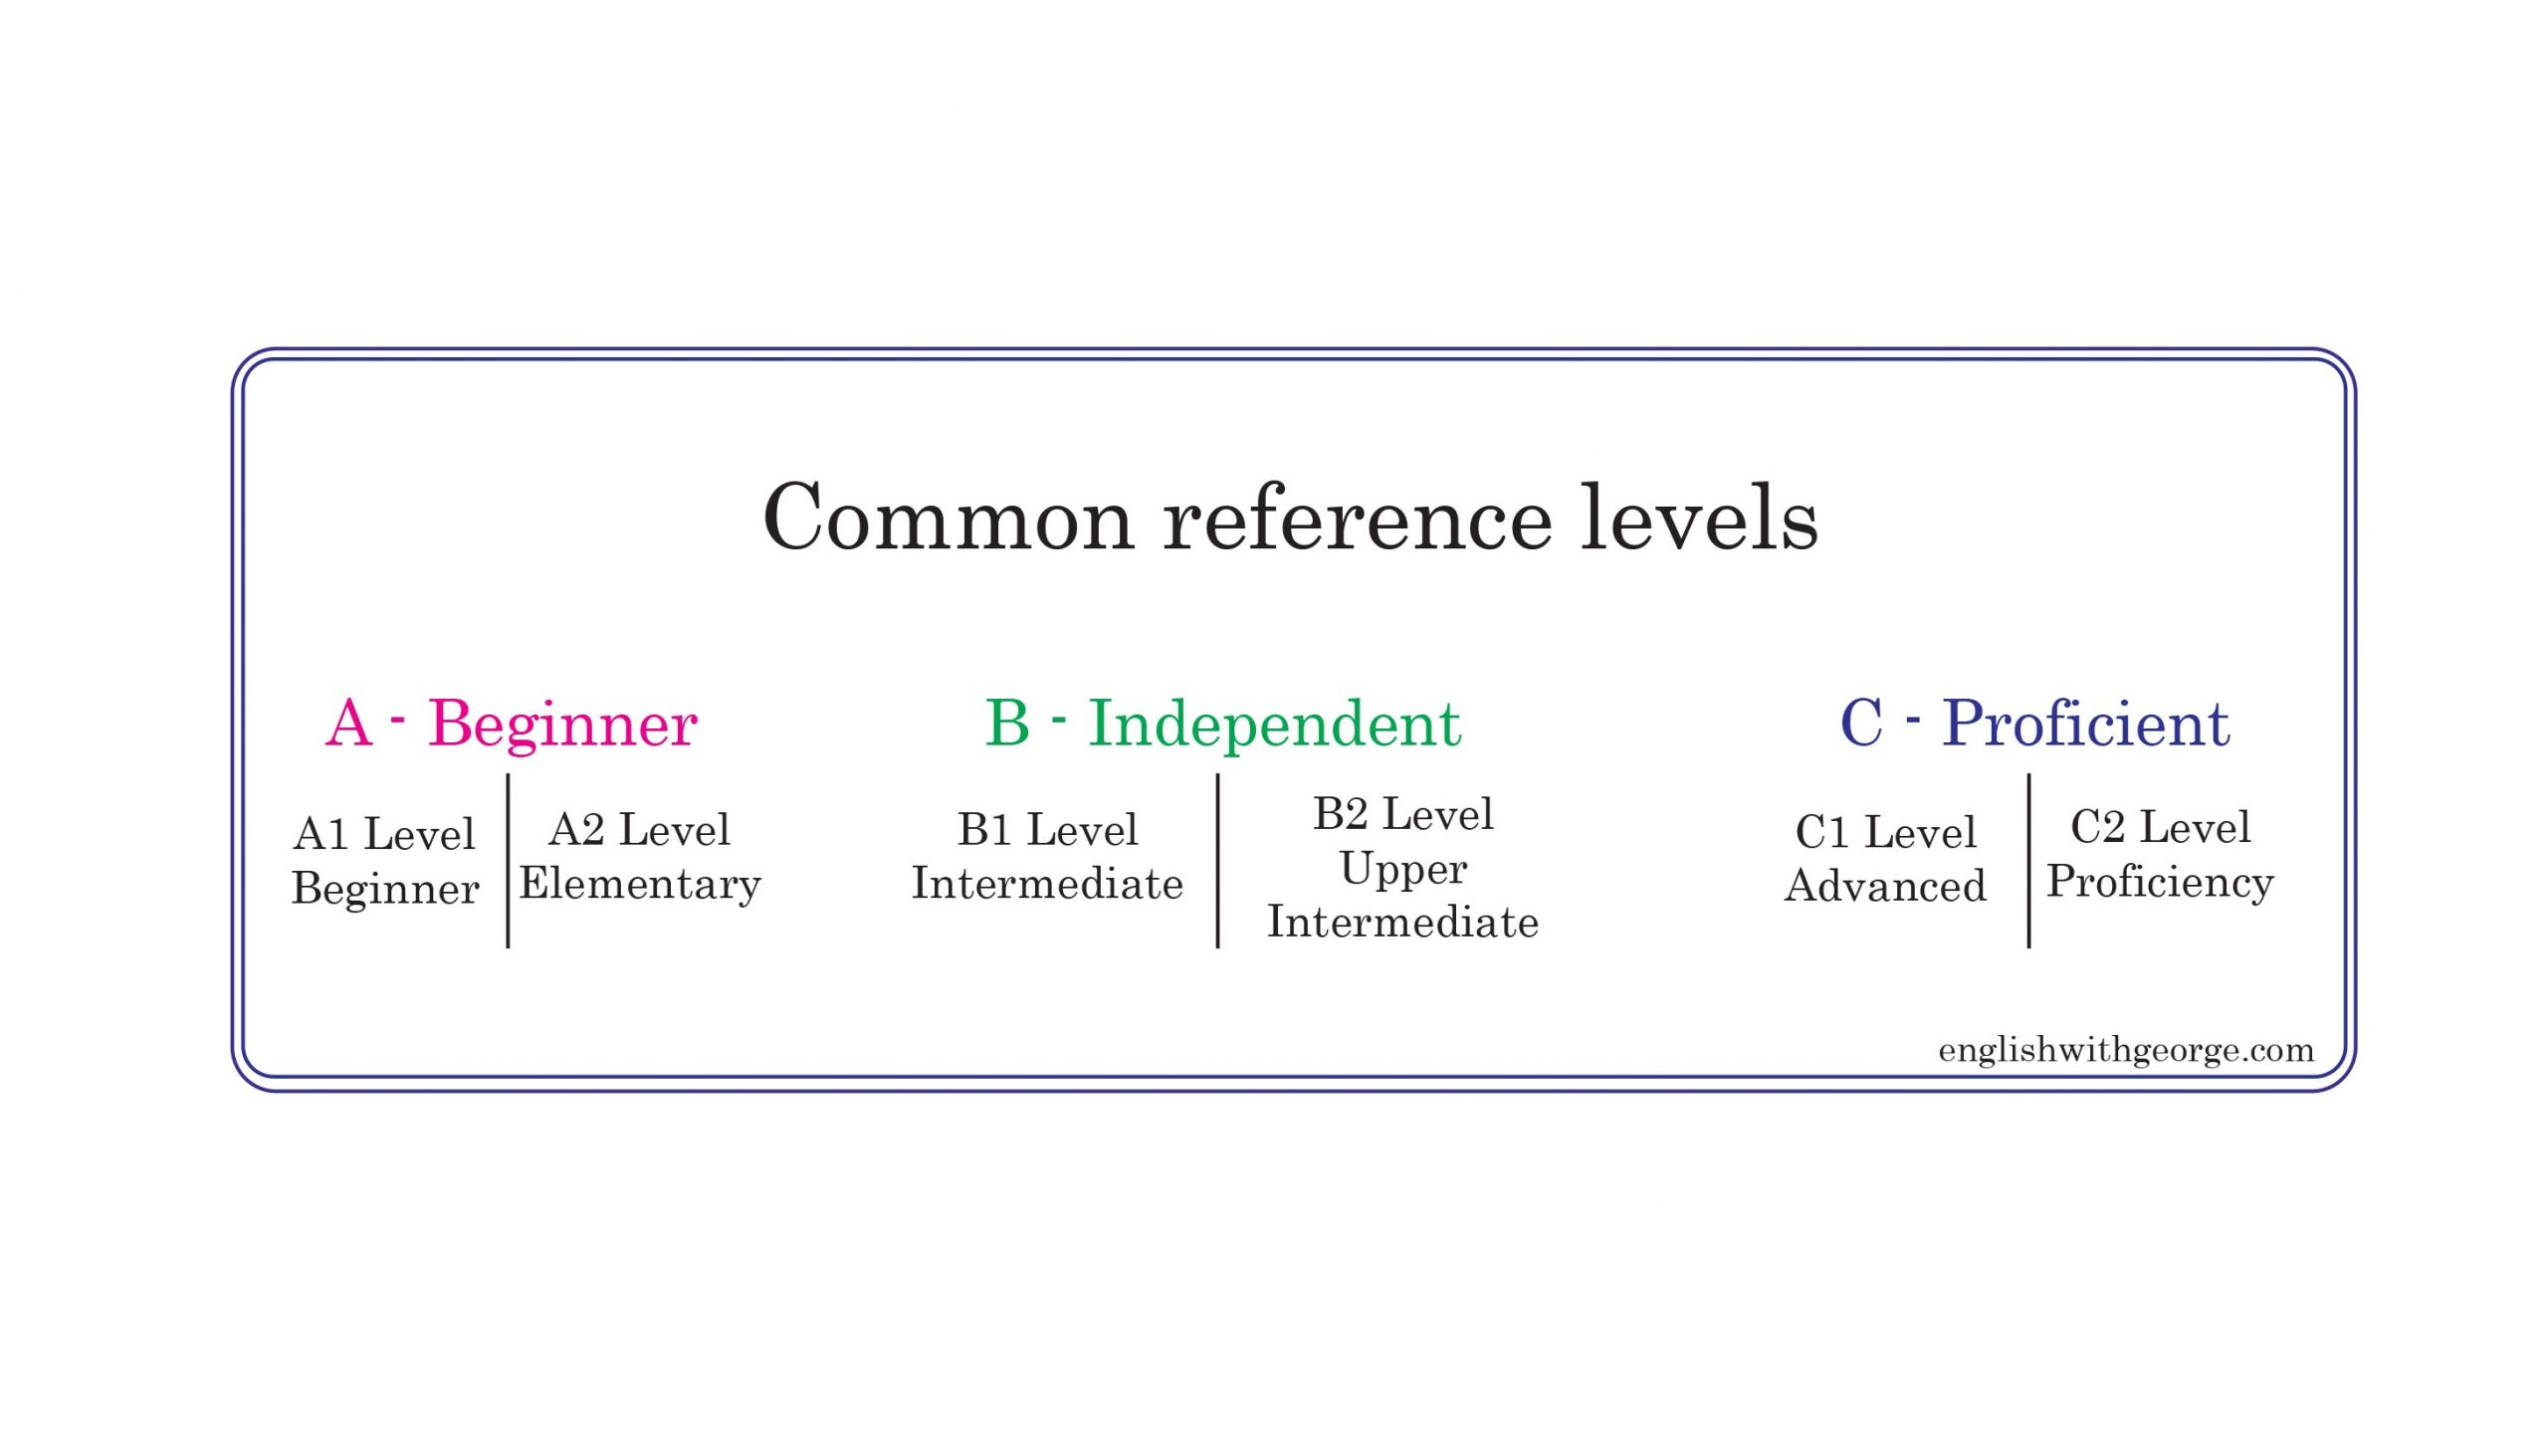 3 CEFR - Common European Framework of Reference for Languages - English with George